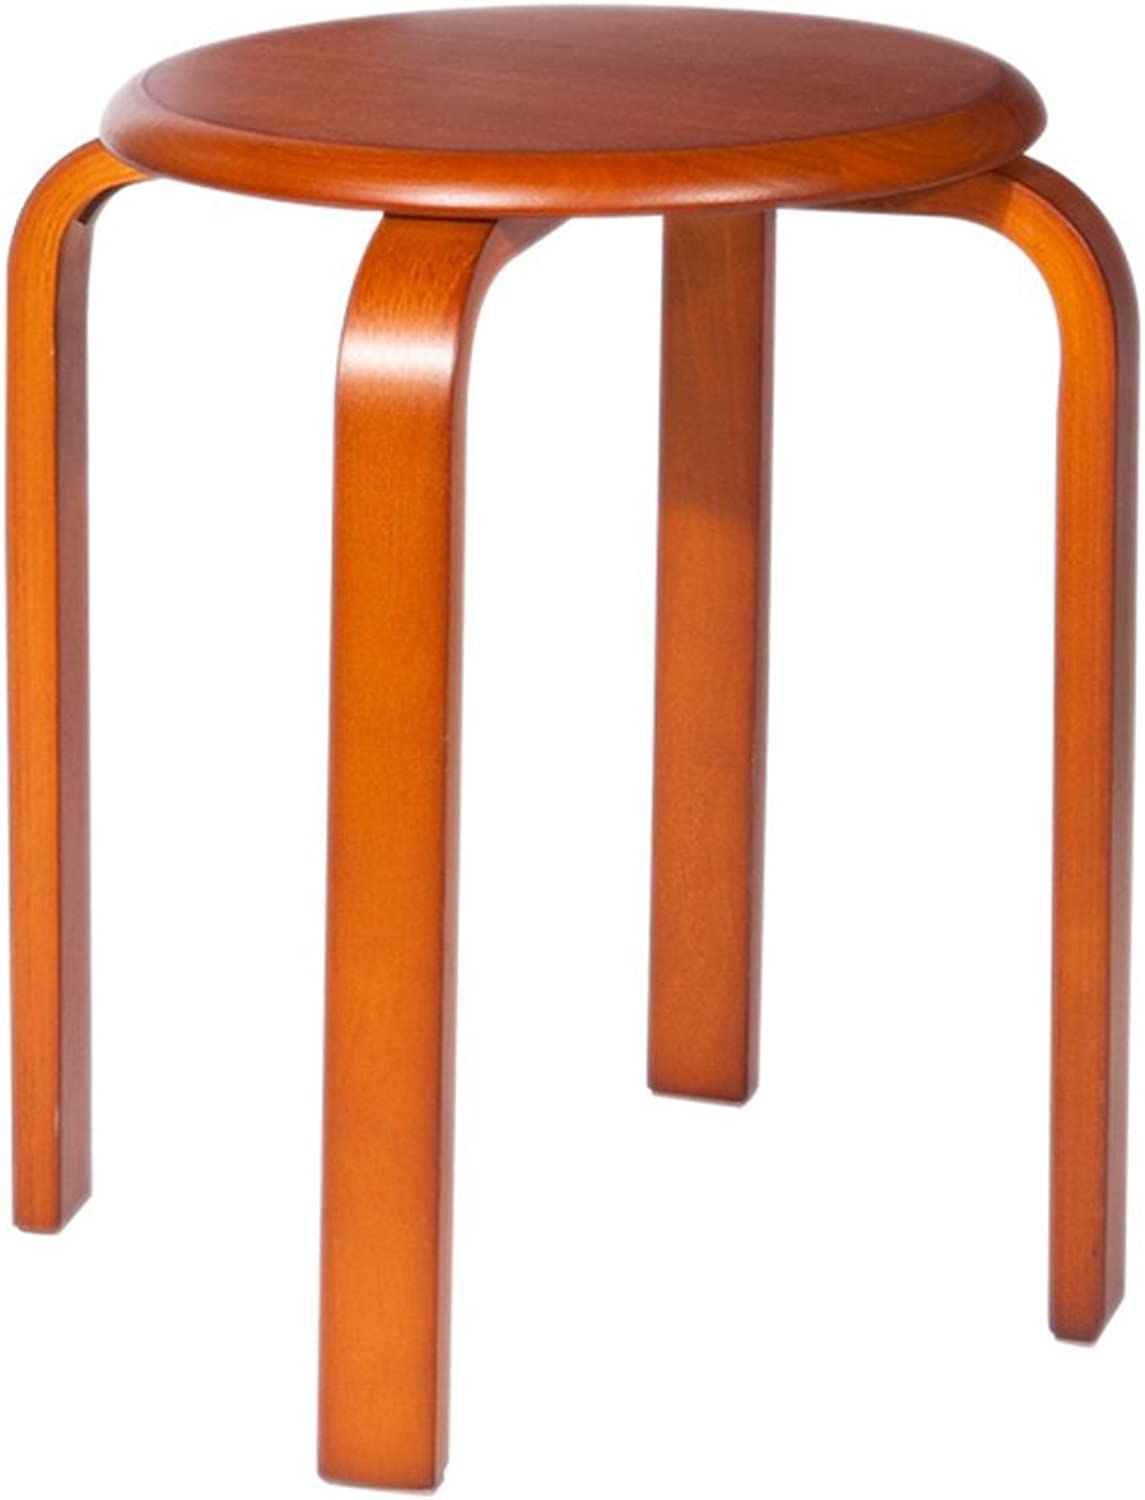 Xiaolin Solid Wood Stools Stools Home Tables and Chairs Creative Fashion Short Stools Stools (color   Honey color)